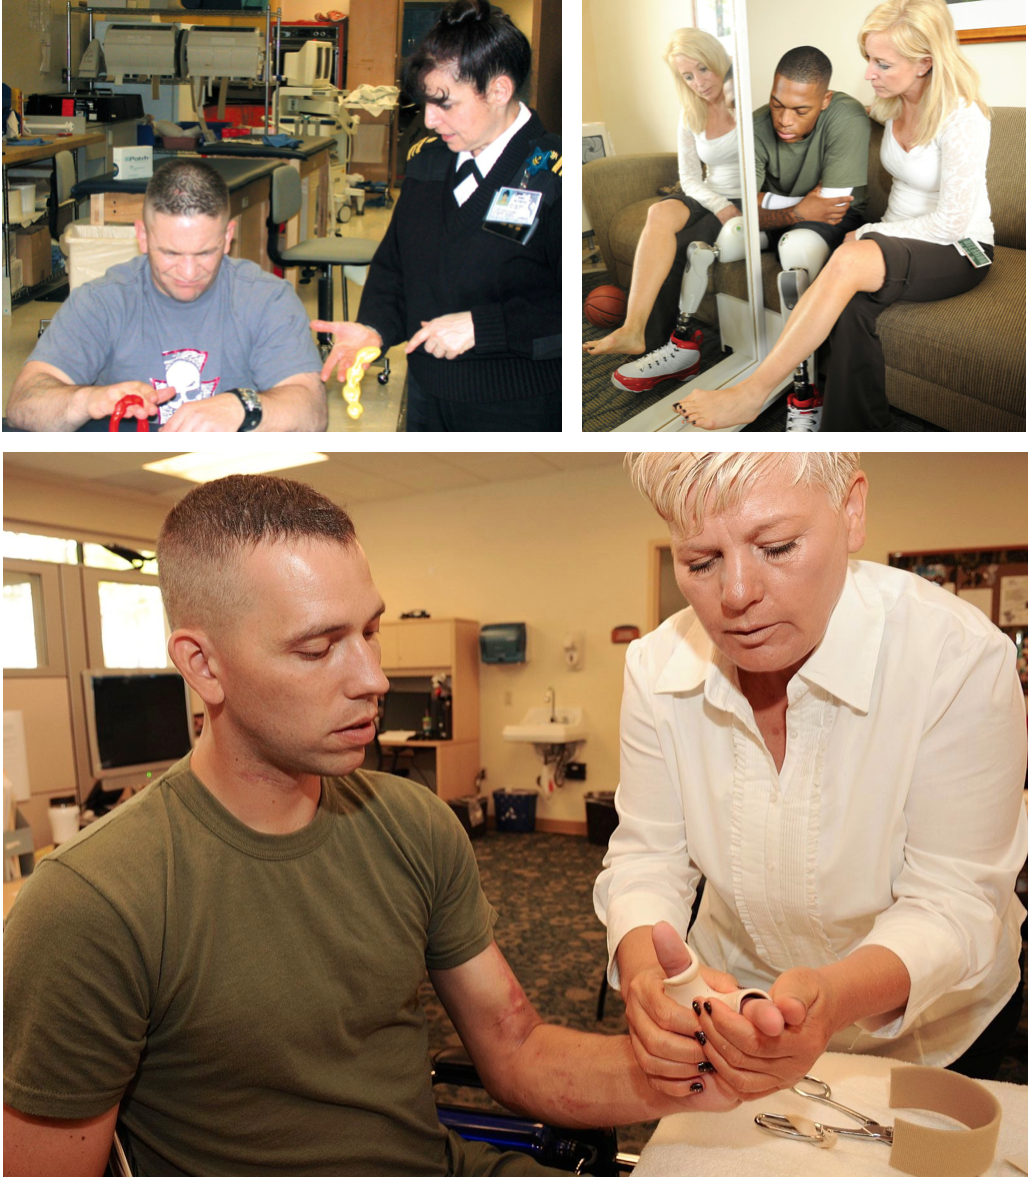 occupational therapy wikipedia